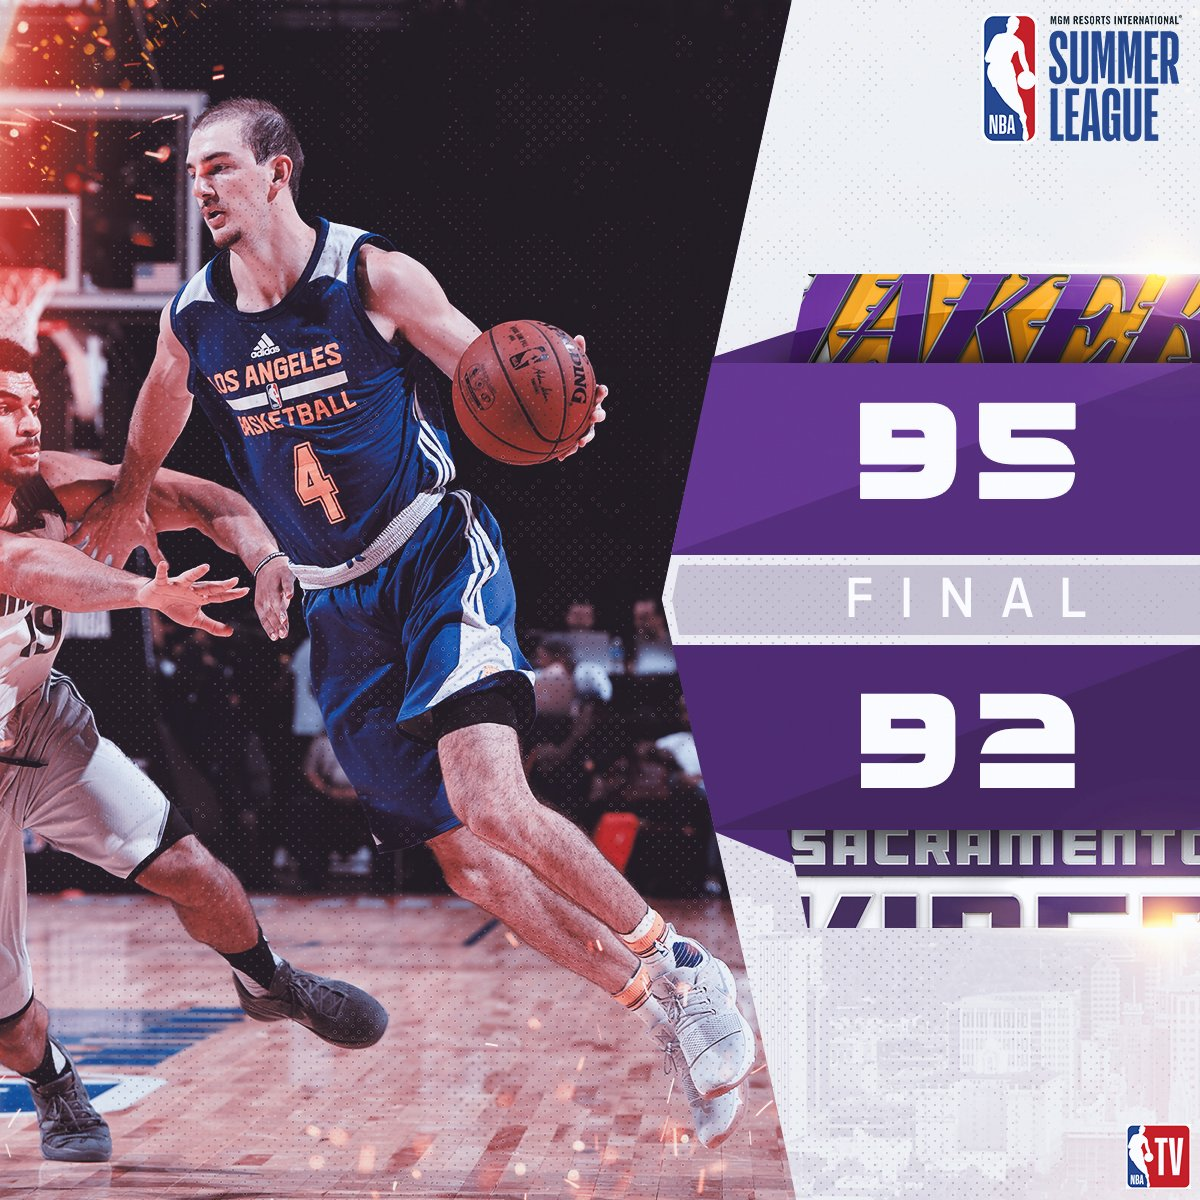 .@Lakers outlast the Kings 95-92 behind Alex Caruso's 18p/9a/4r/4s for their first win of MGM Resorts #NBASummer League! https://t.co/qWZ8o2EBnv